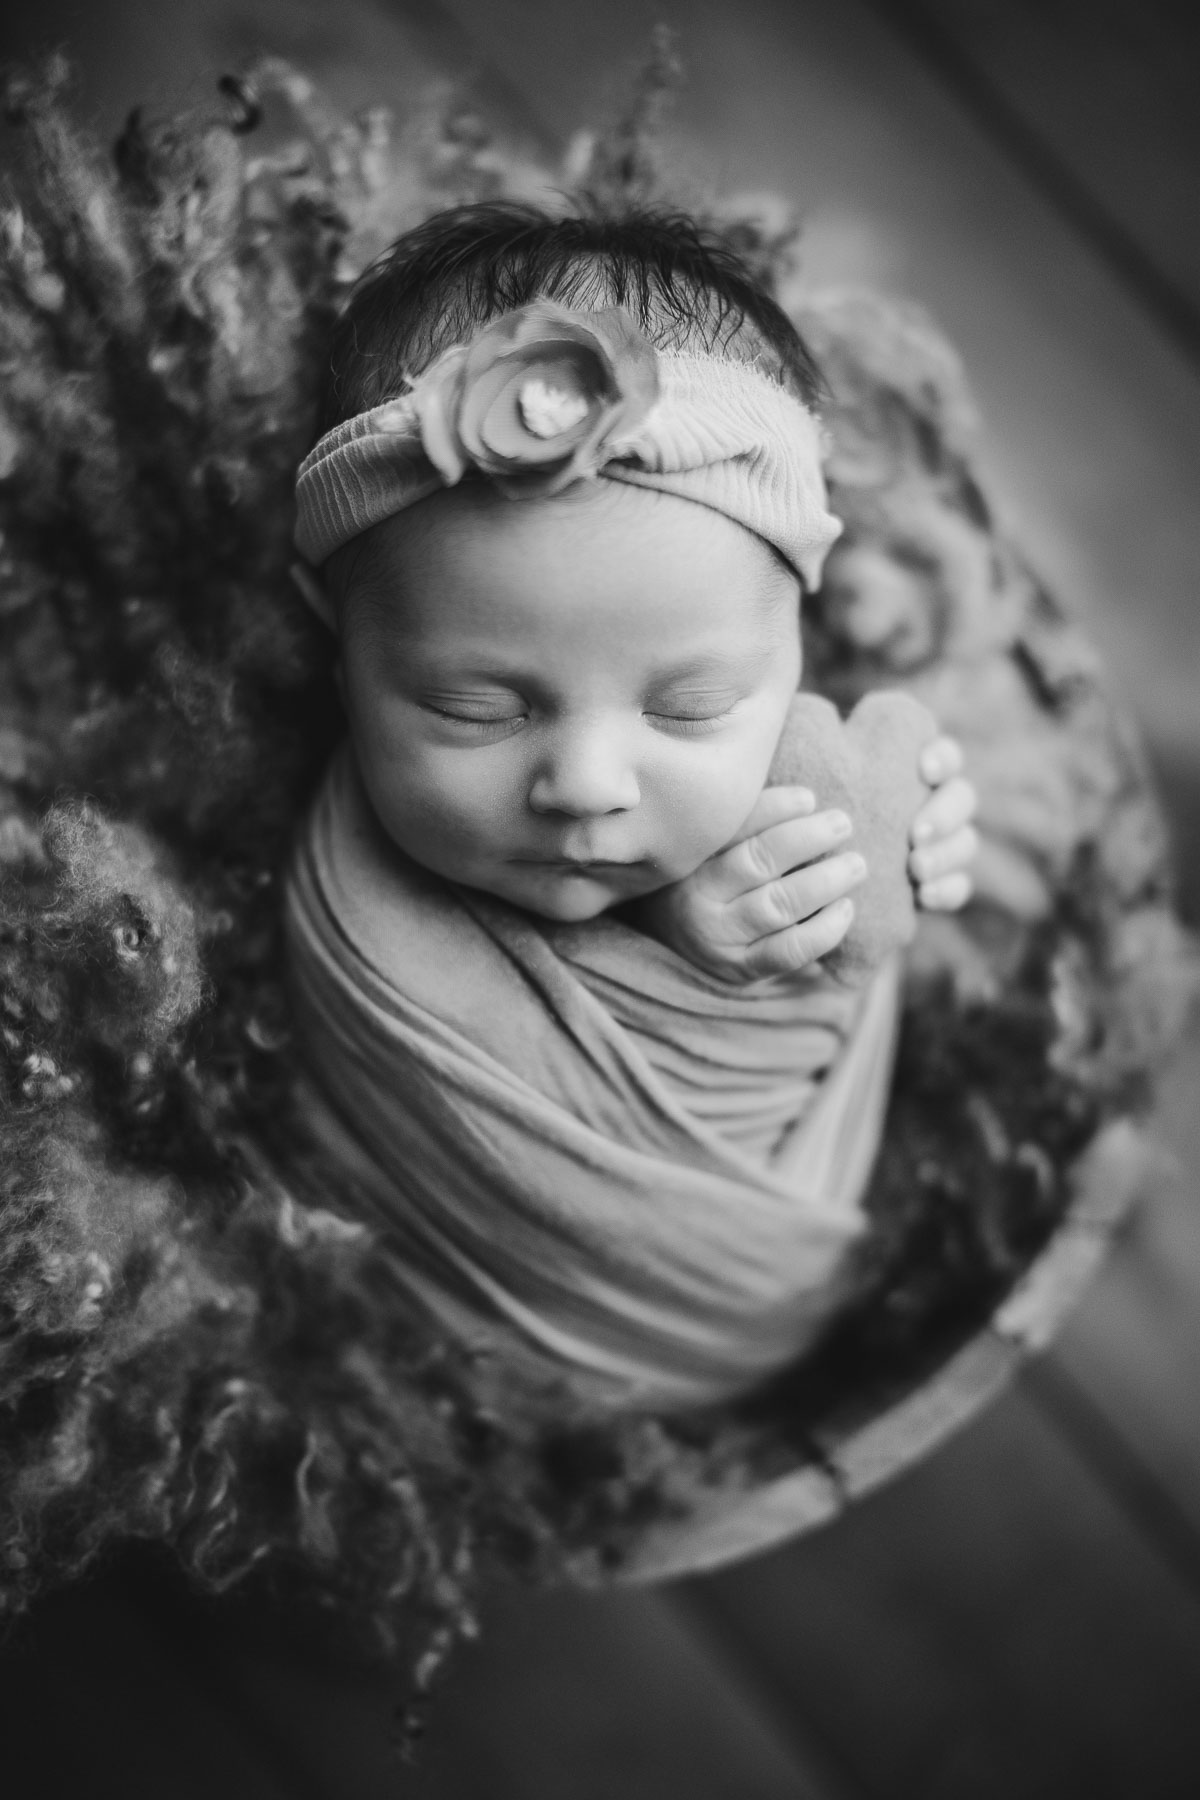 affordable vancouver newborn photography - black and white